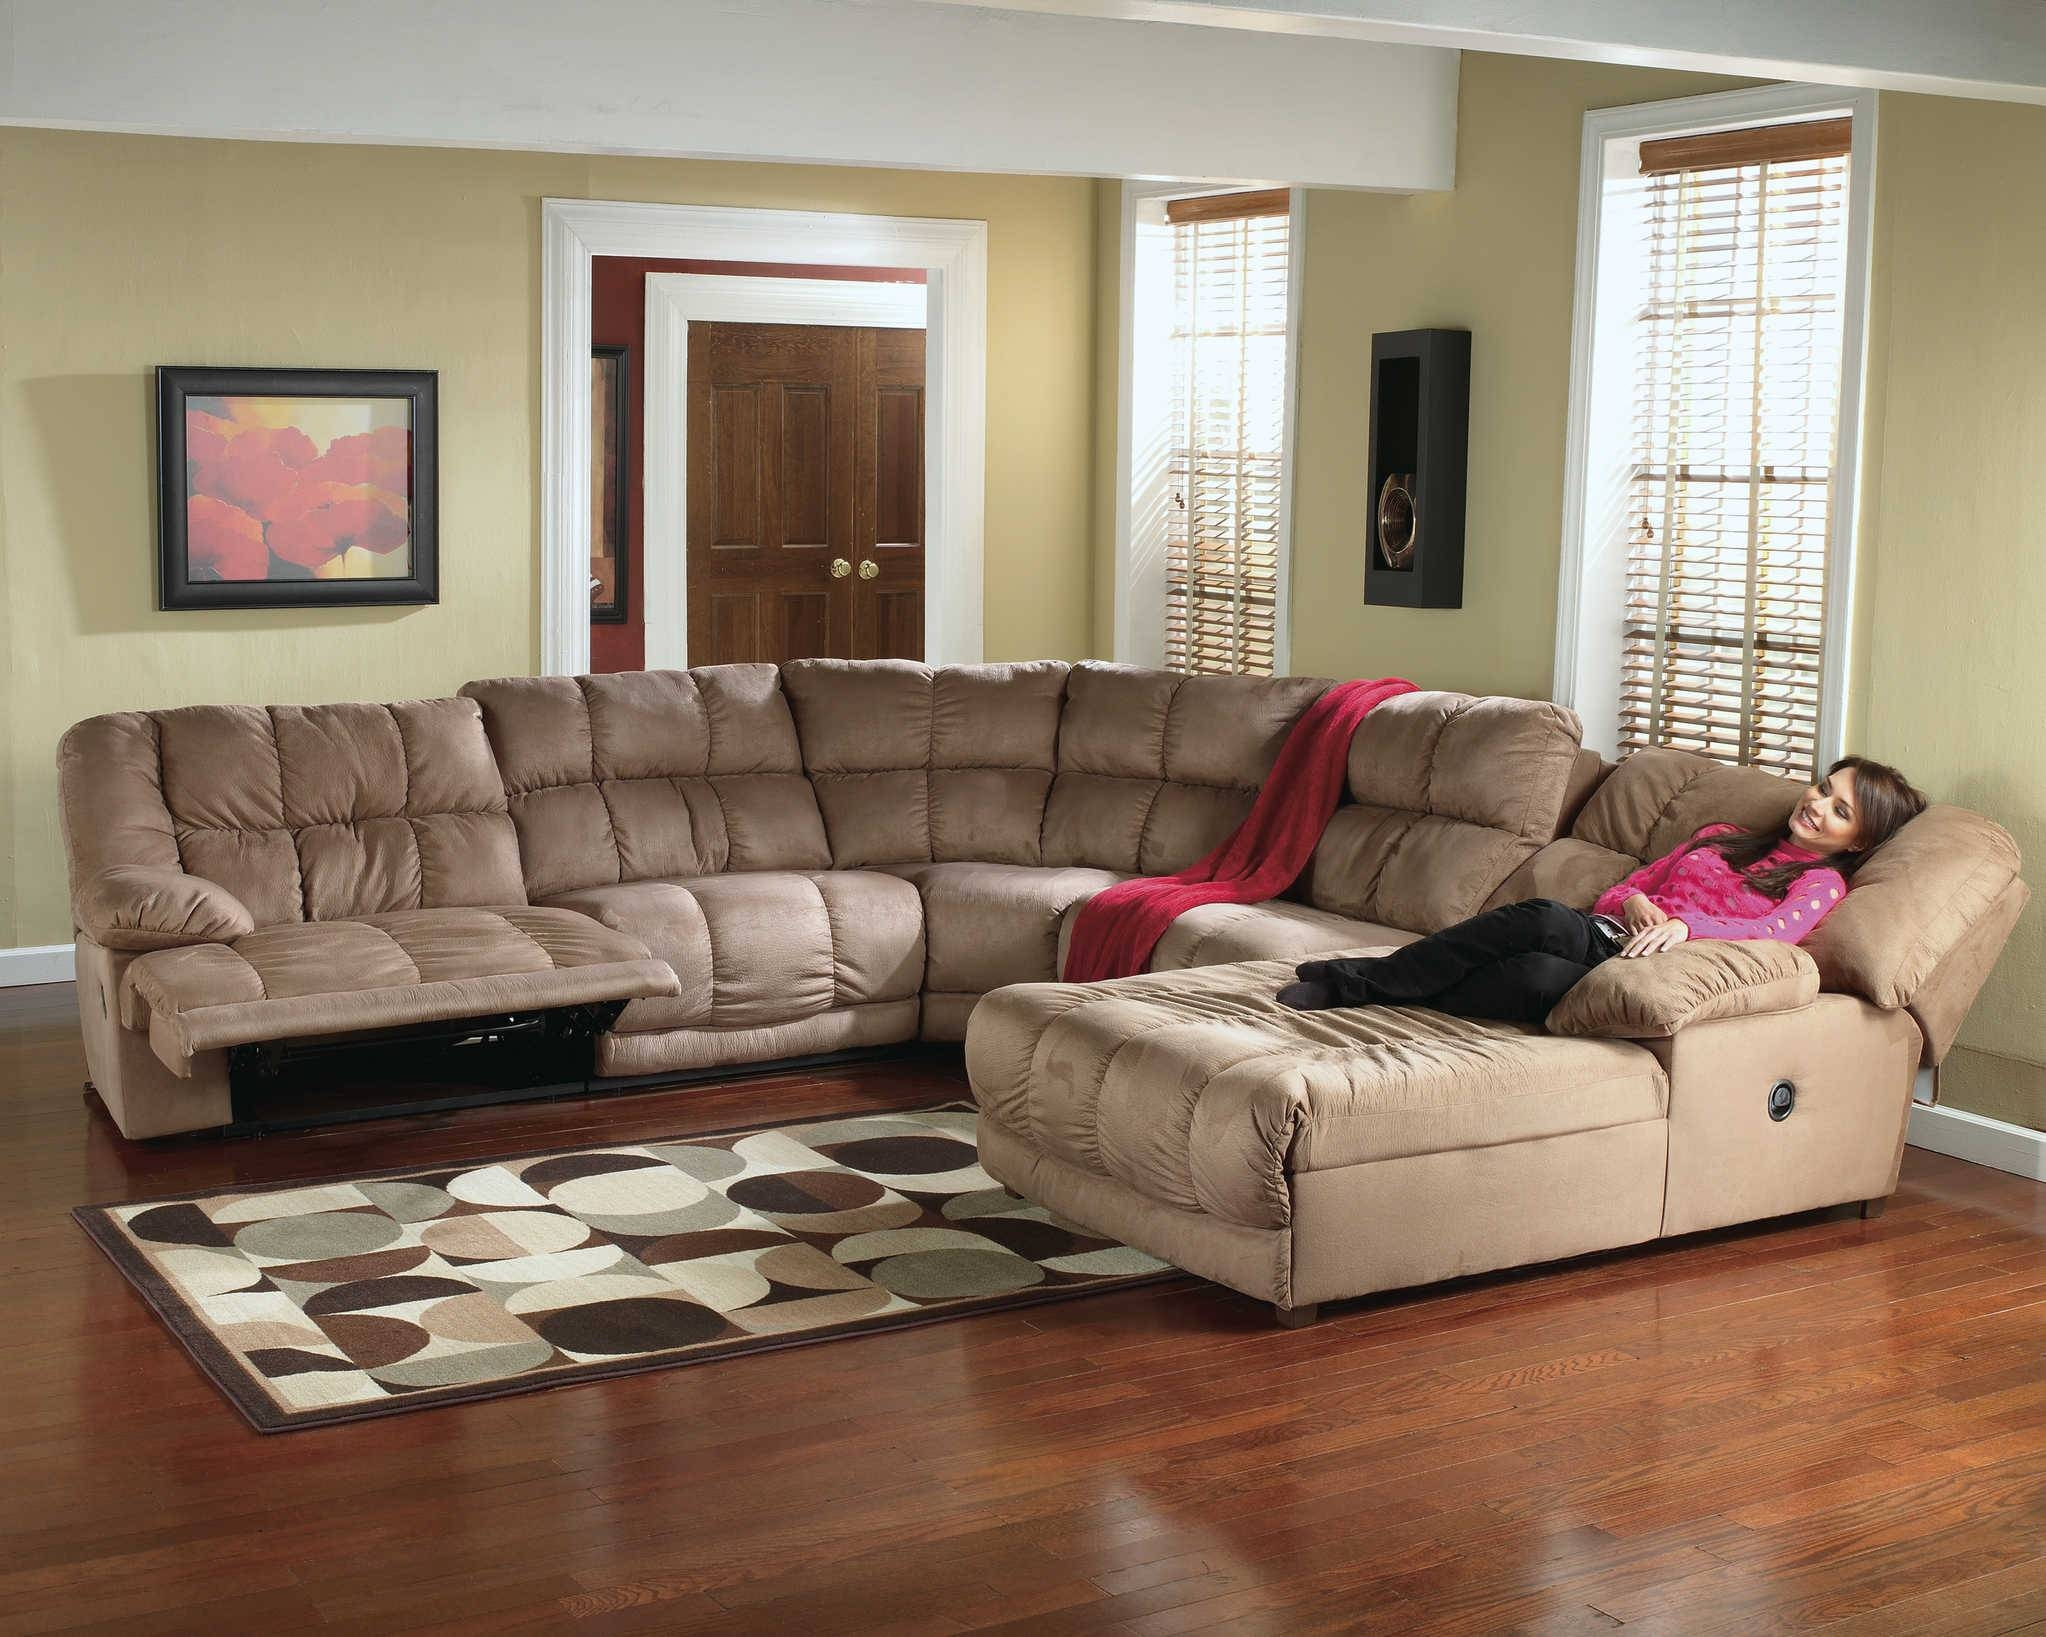 Luxury Microfiber Sectional Sofas With Chaise 62 For Braxton with Braxton Sectional Sofas (Image 10 of 15)